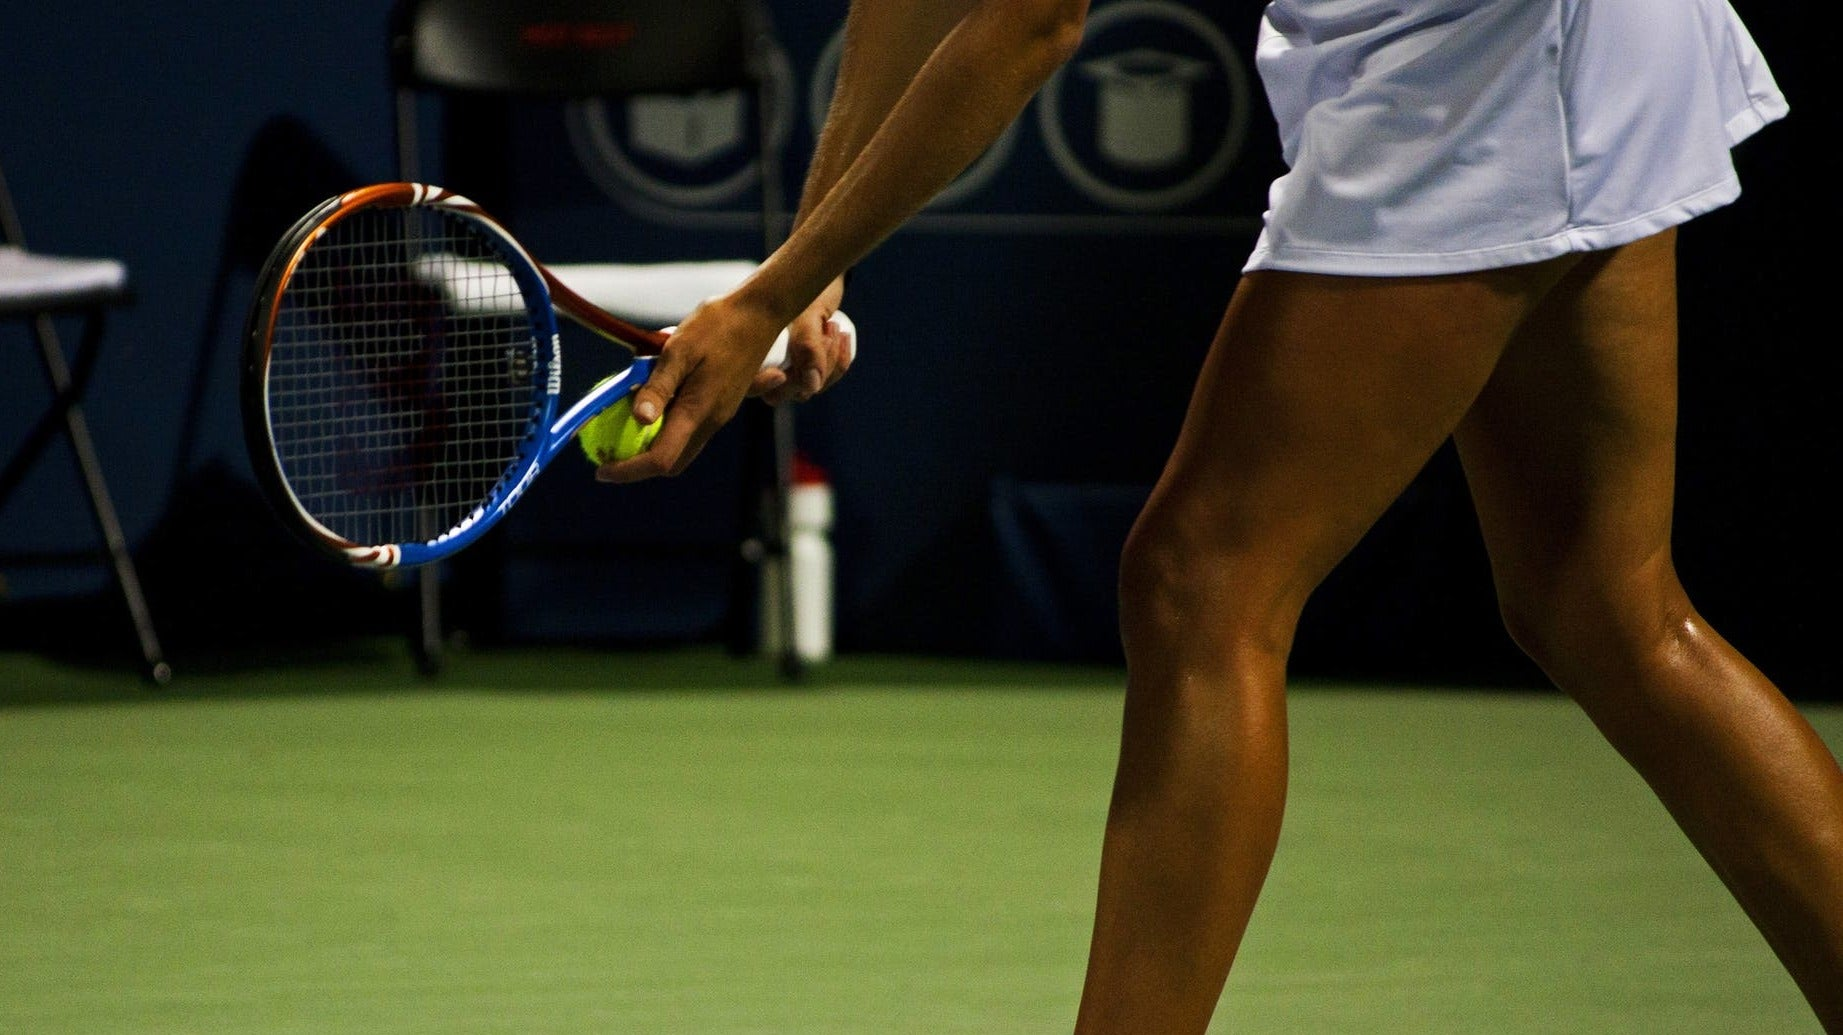 How To Watch The US Open In Australia